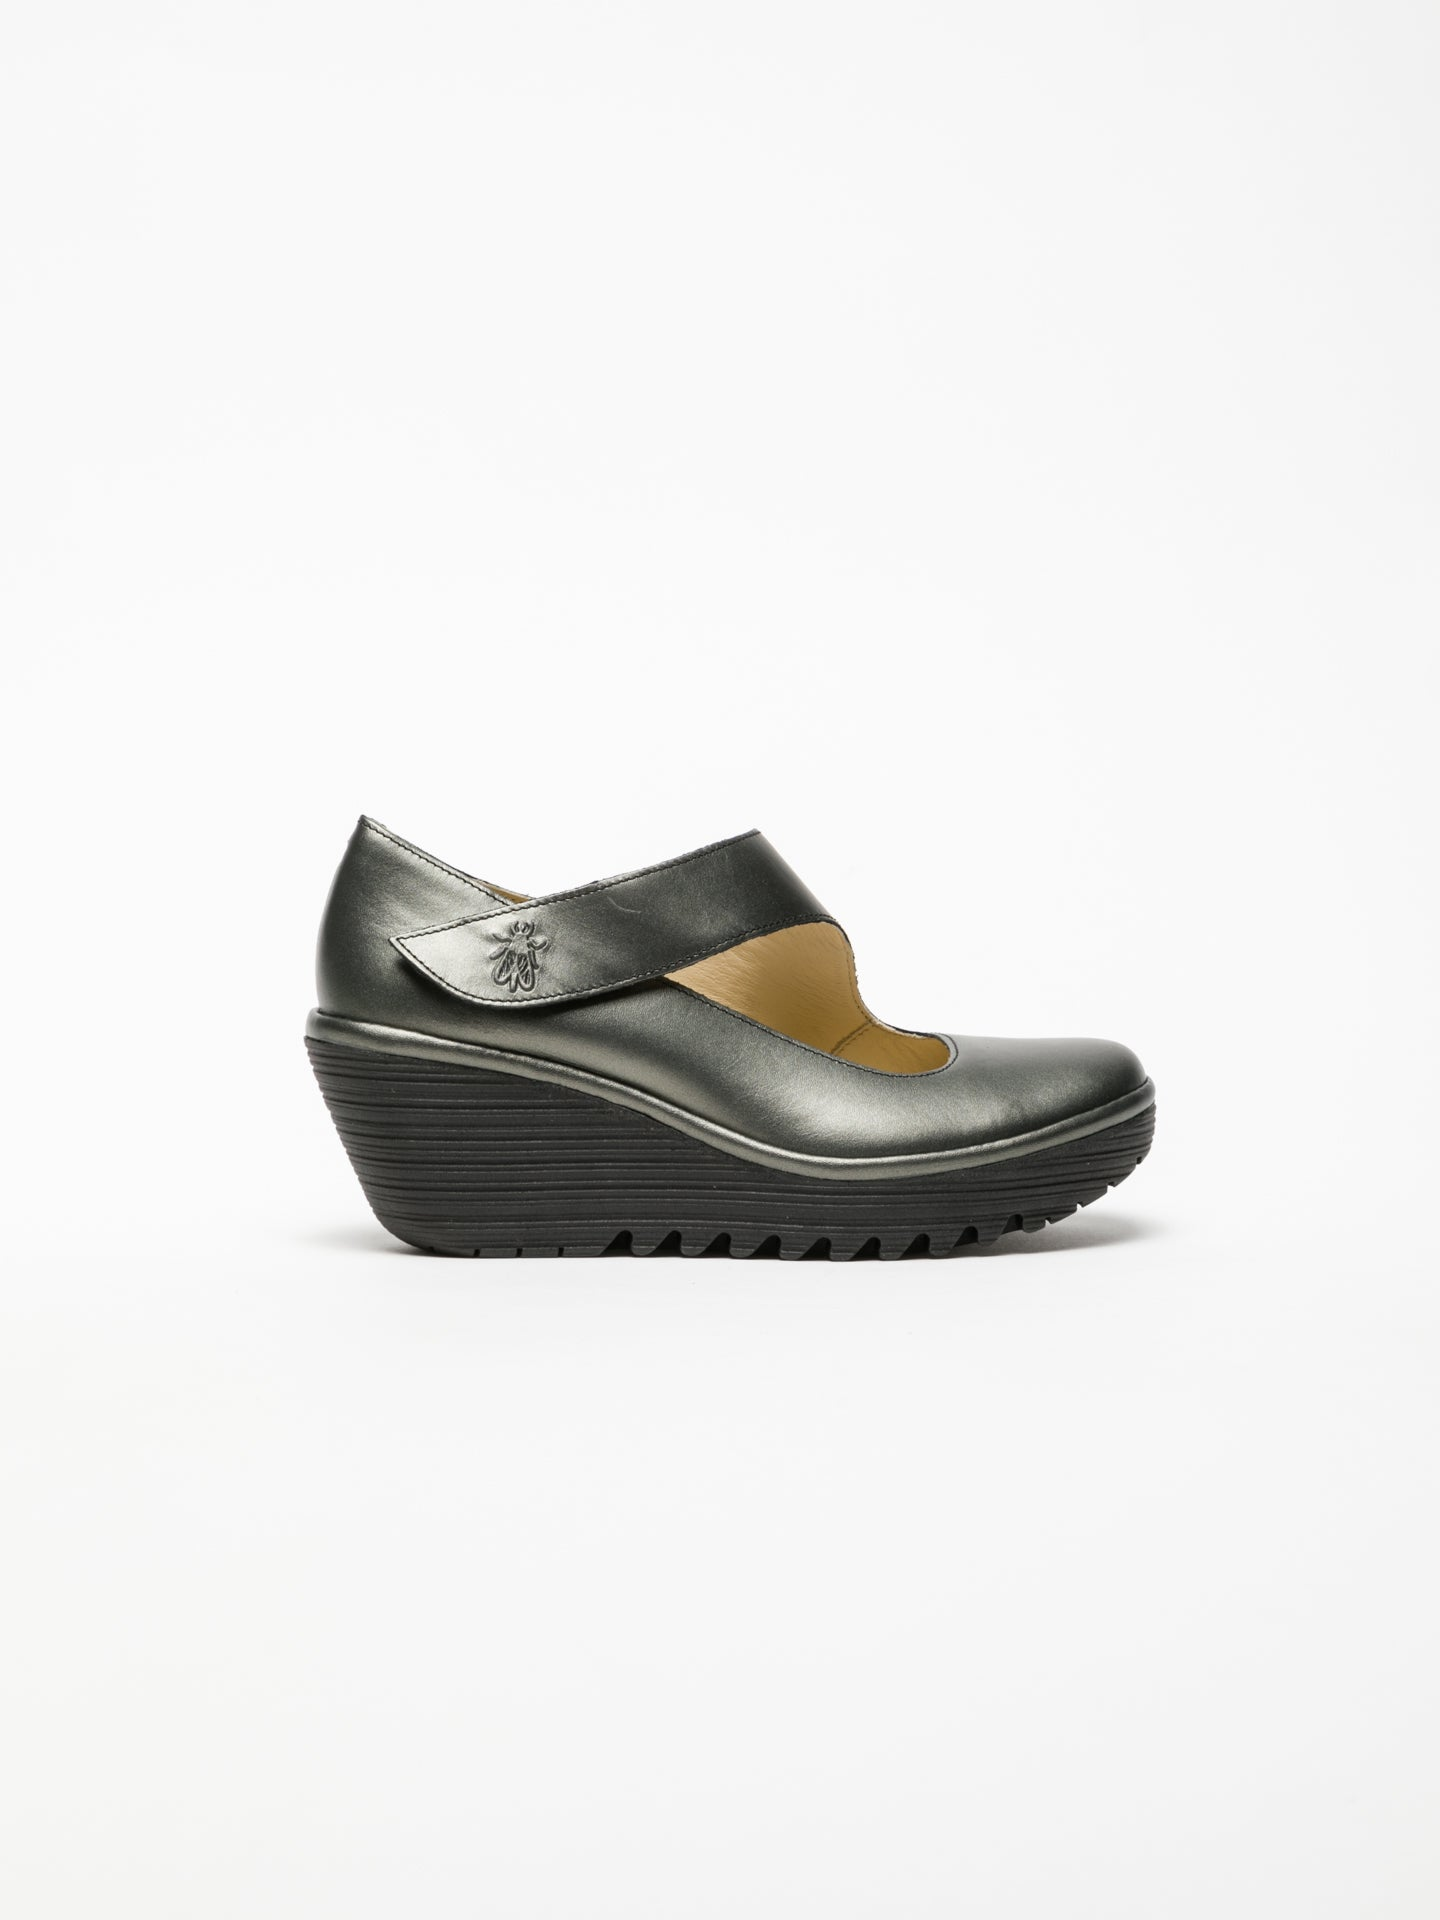 Fly London Gray Wedge Shoes